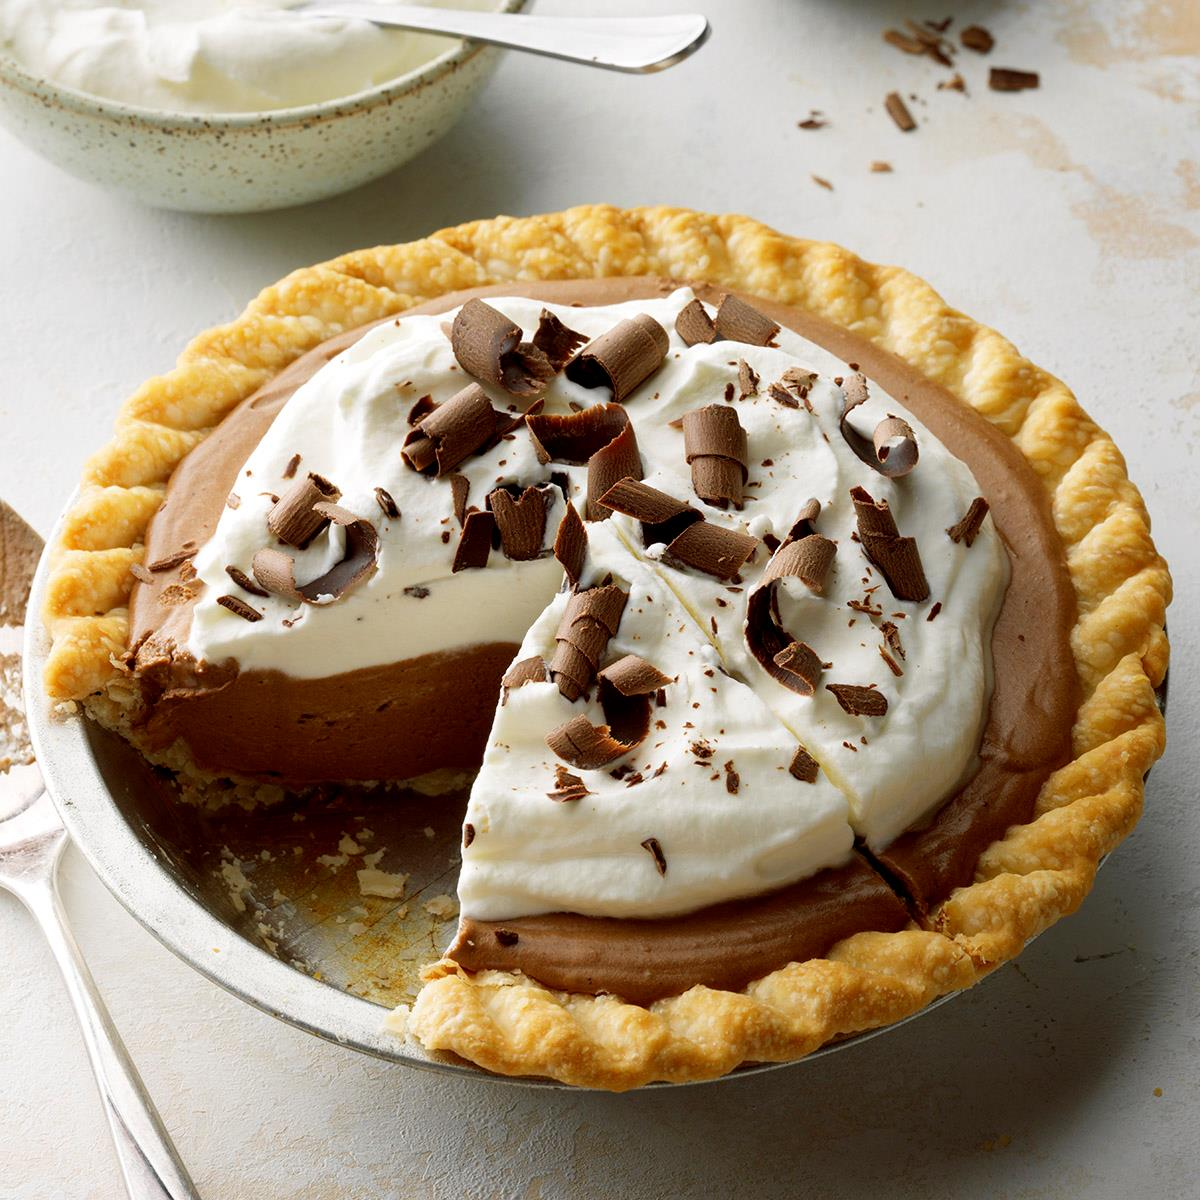 French Silk Pie Recipe: How to Make It | Taste of Home